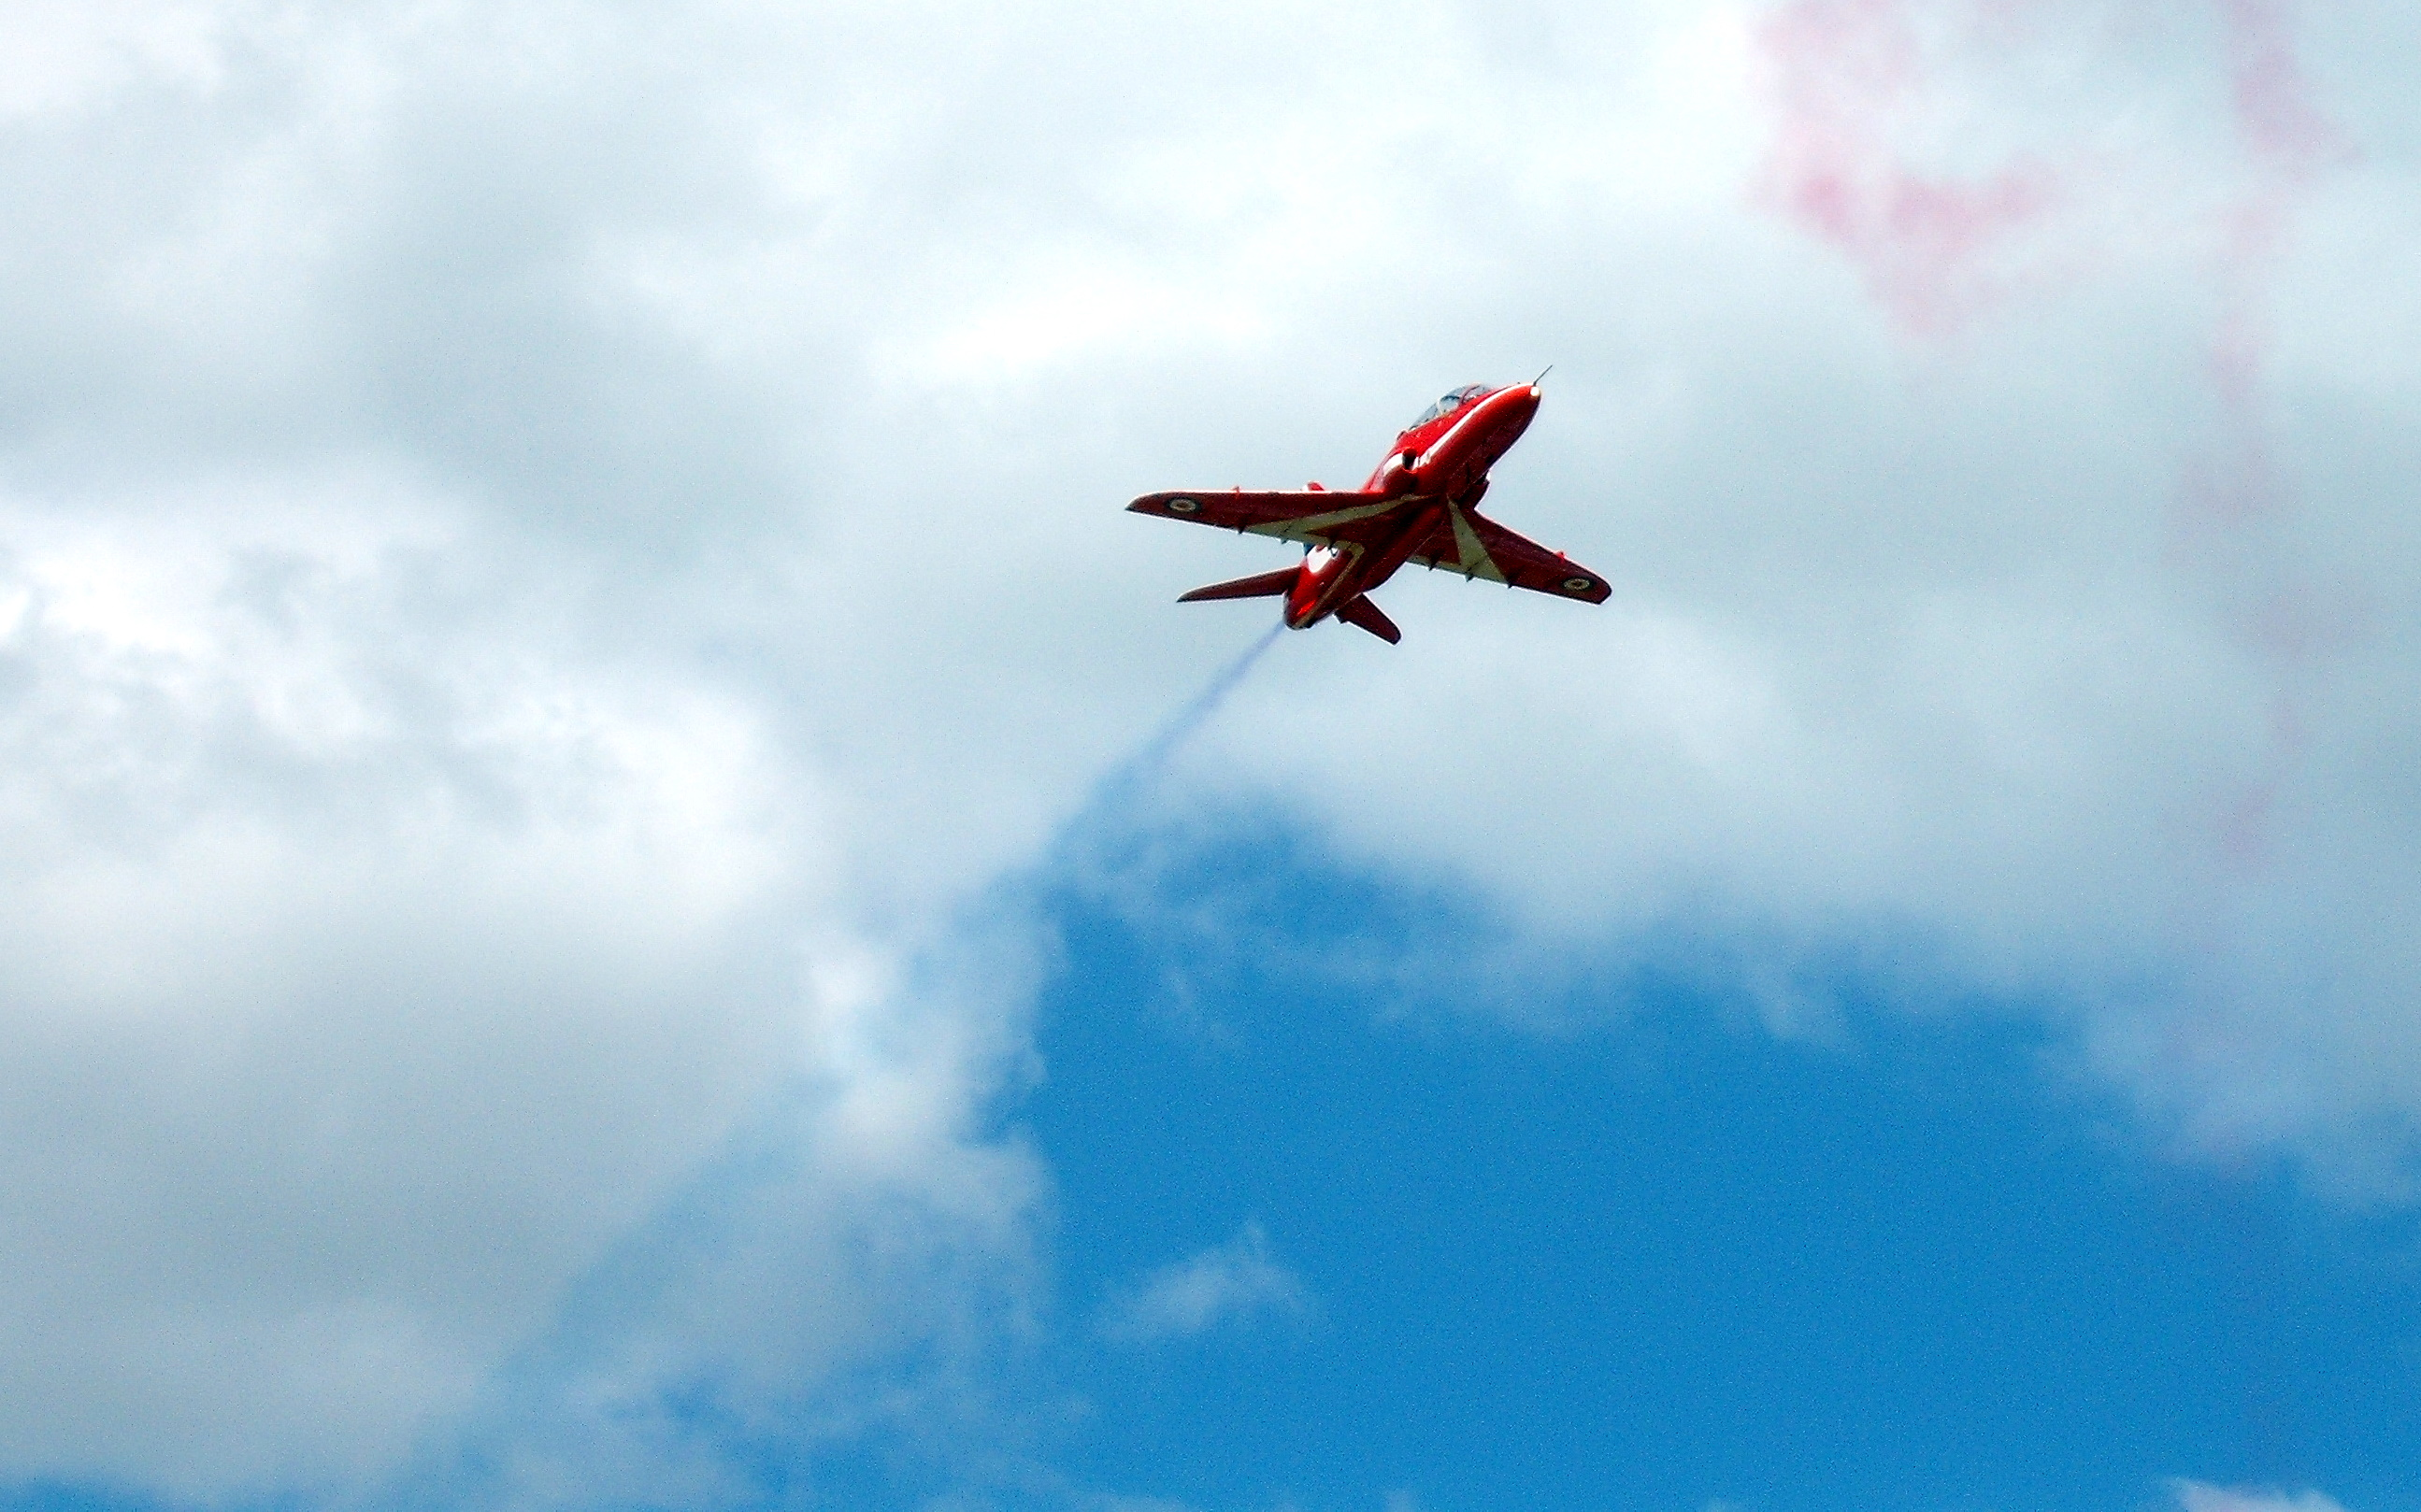 A Picture of a Red Arrow